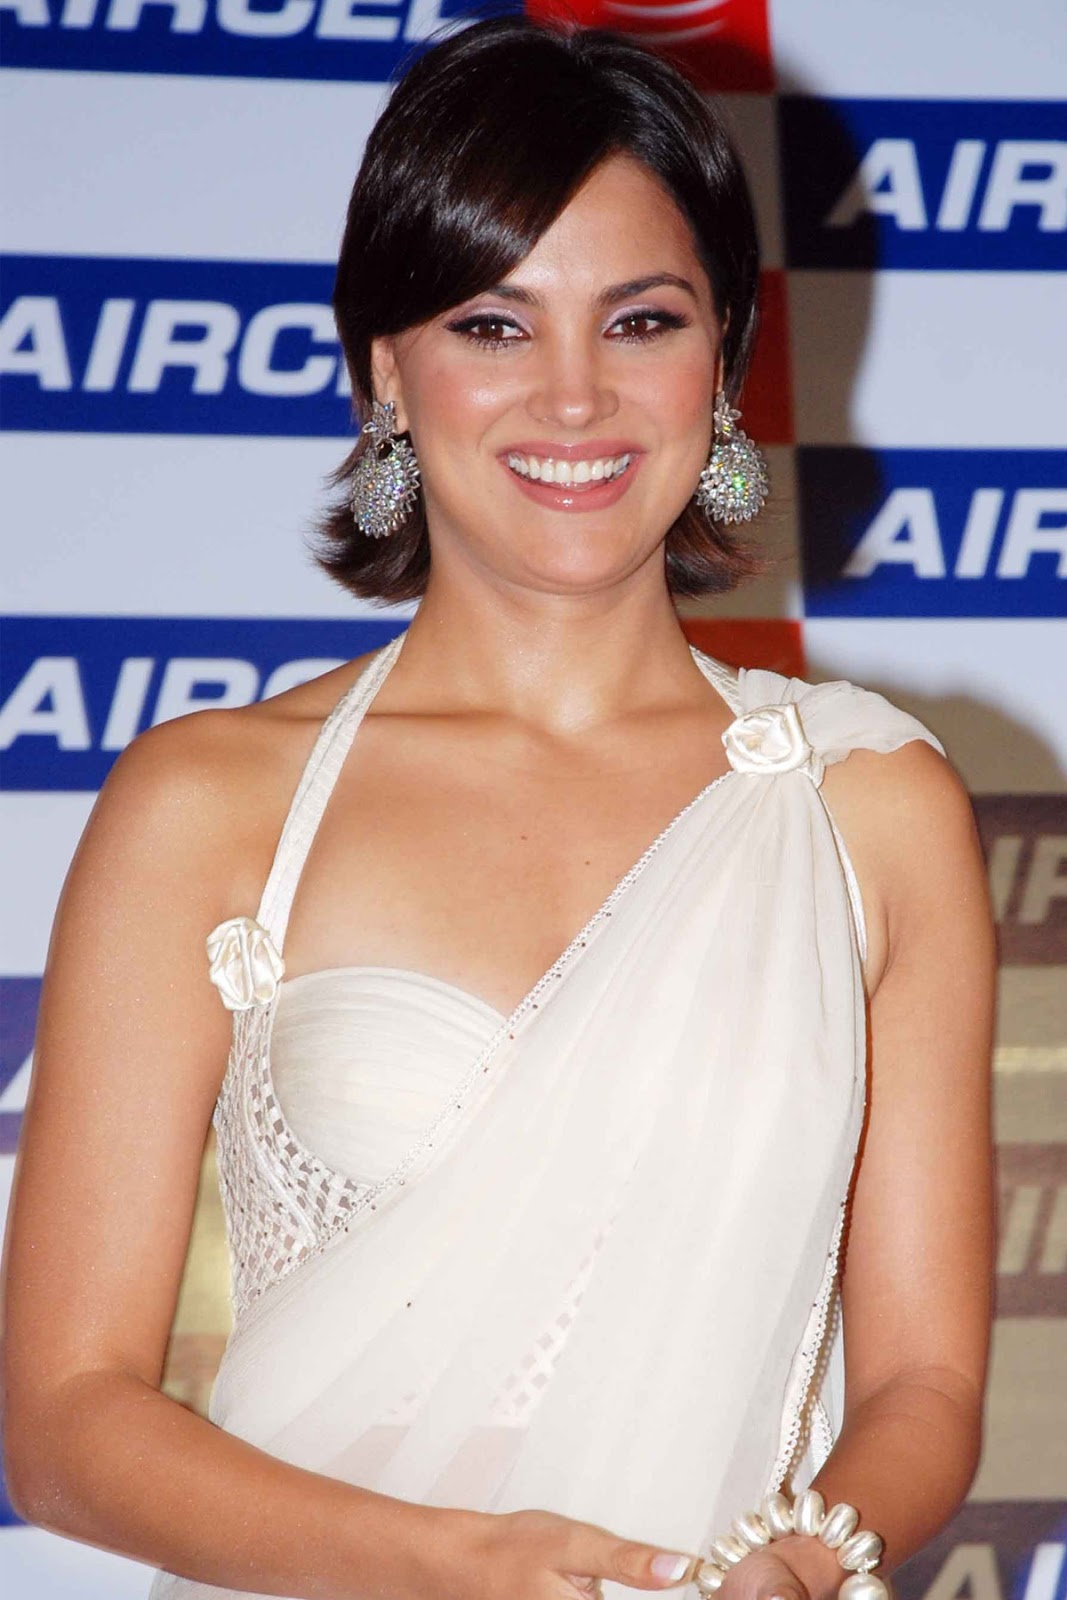 Lara dutta white dress photos